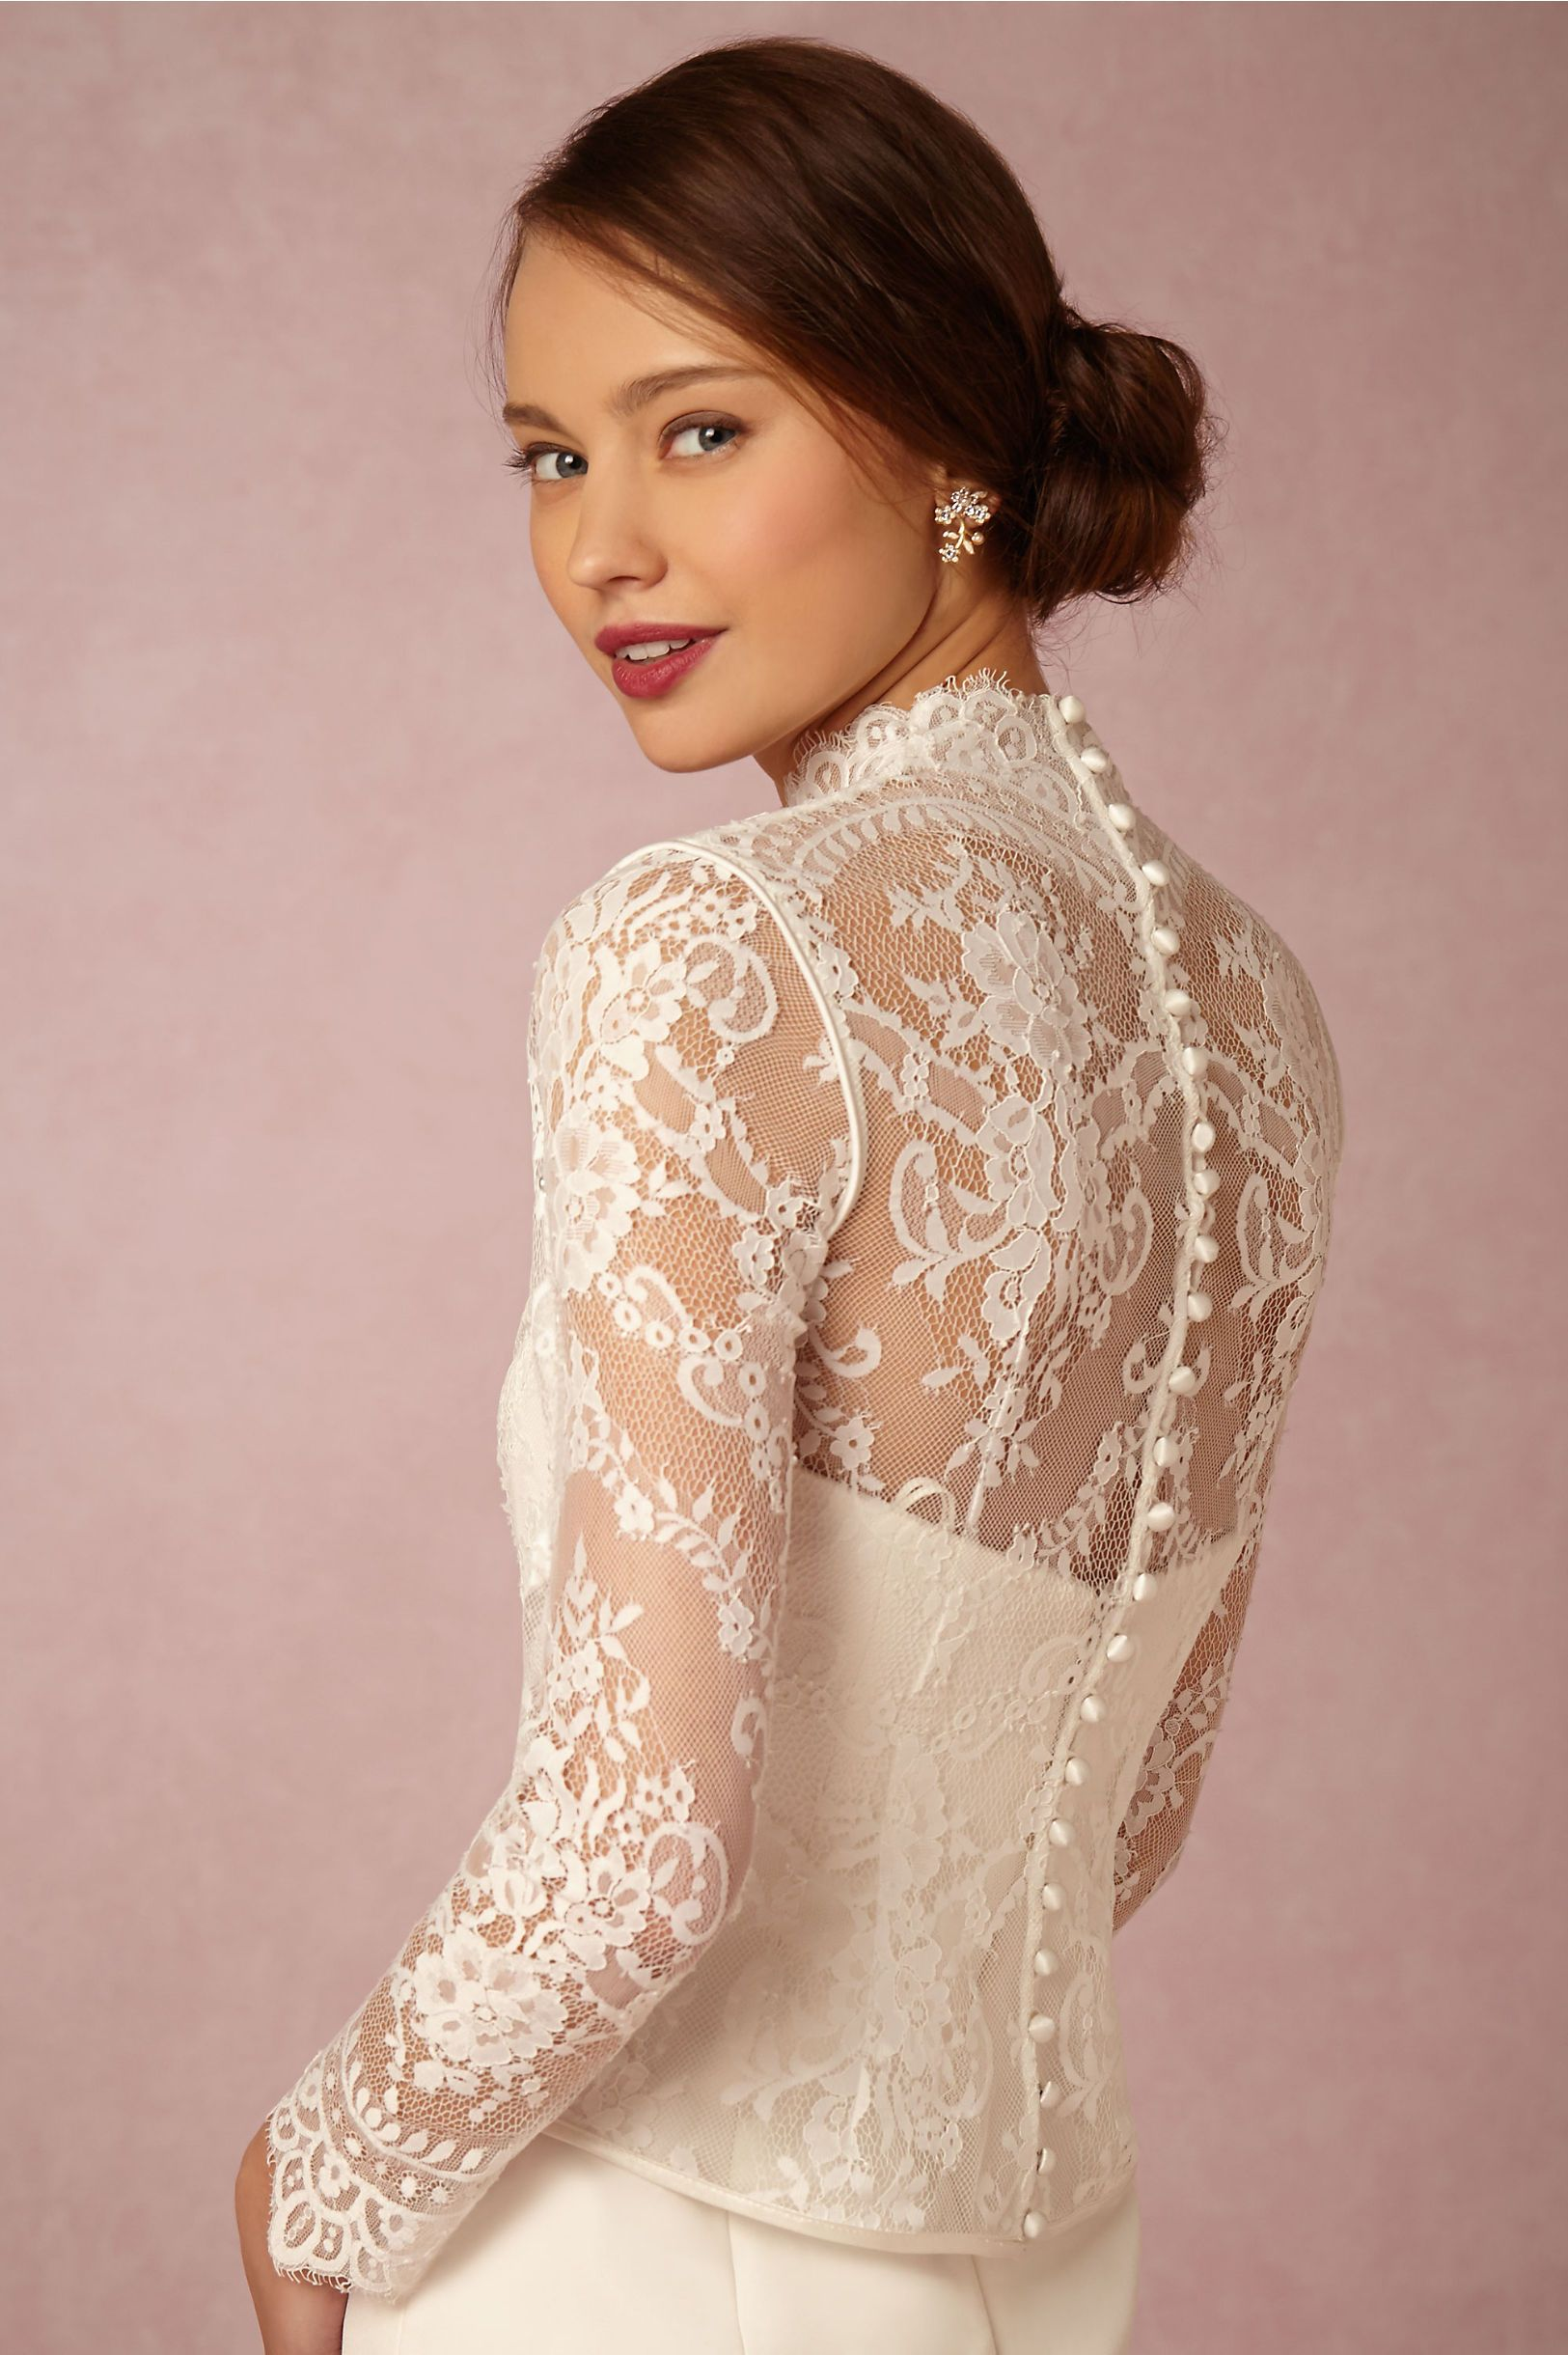 BHLDN Dahlia Topper in Bride Bridal Cover Ups at BHLDN | Bridal ...